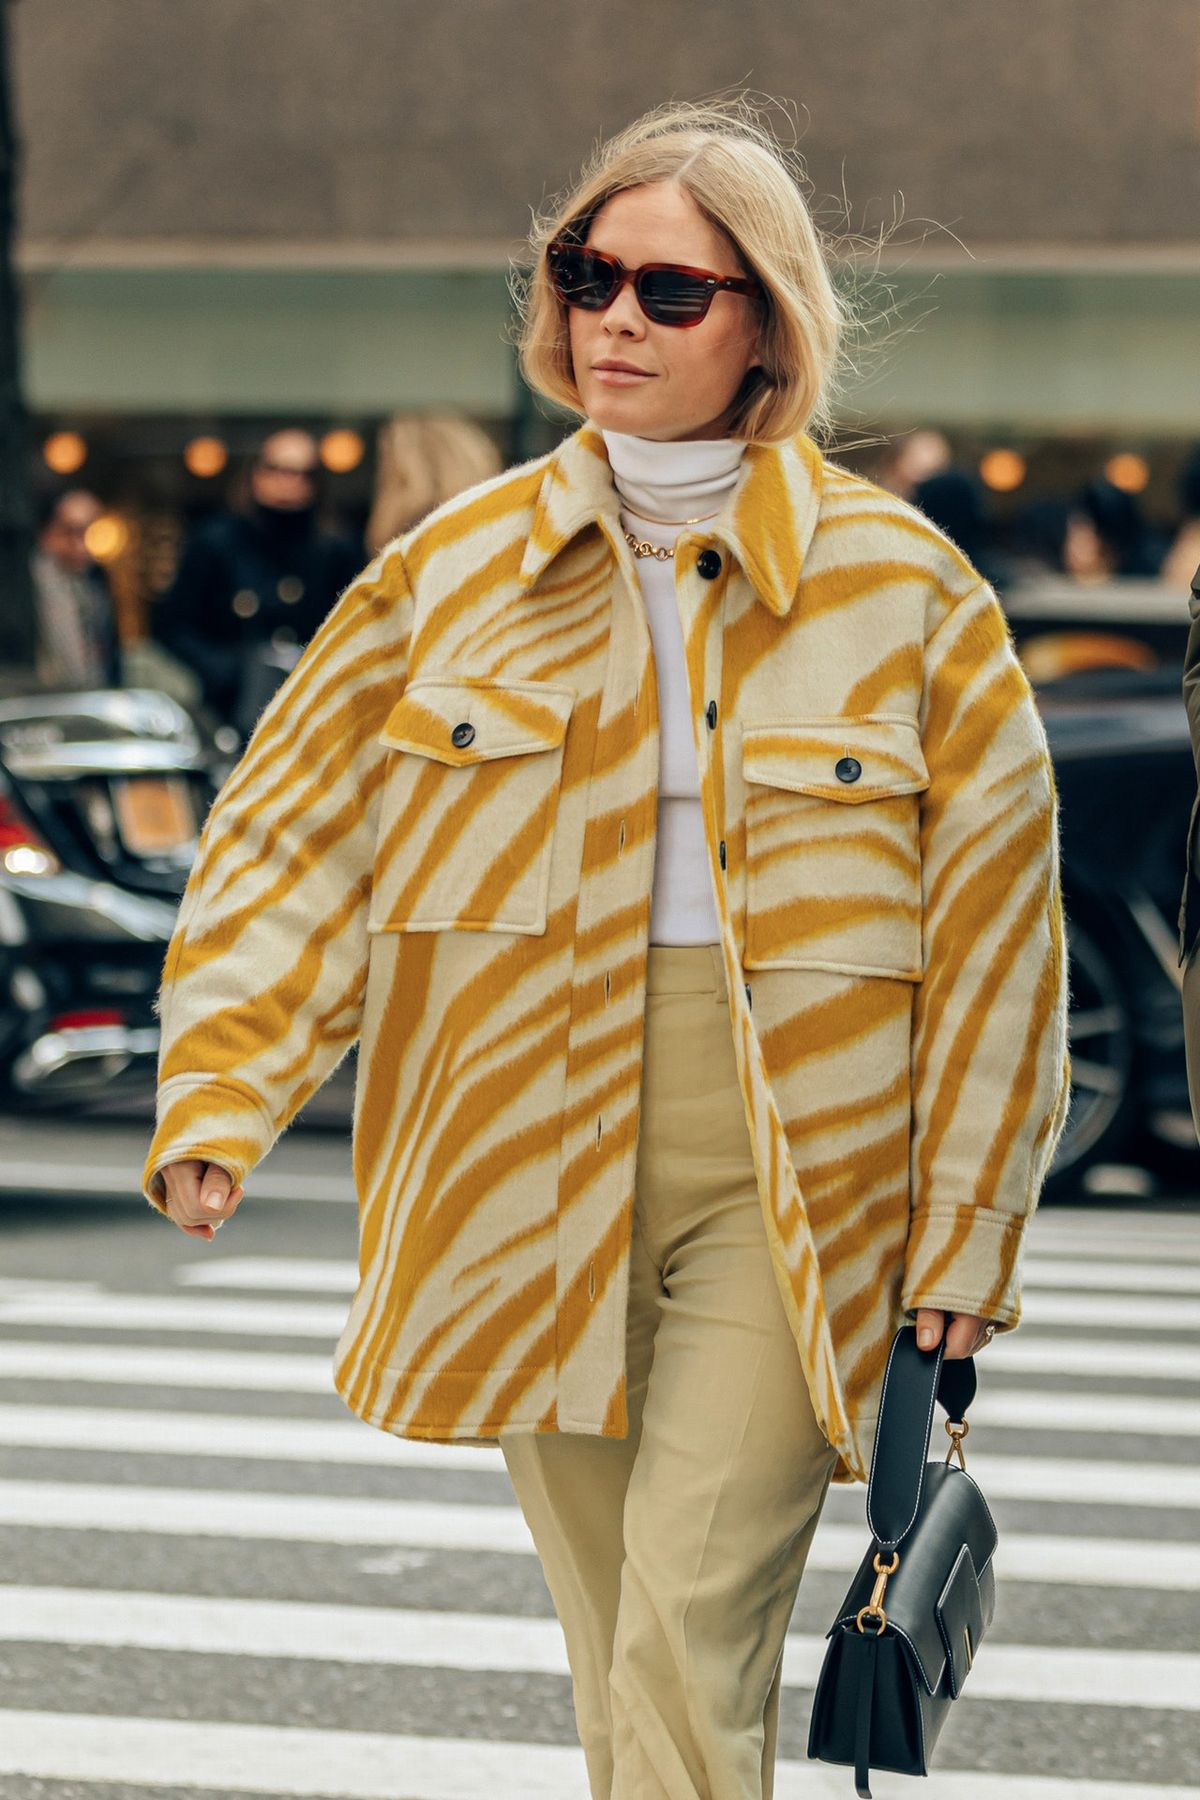 The Best Street Style From NYFW